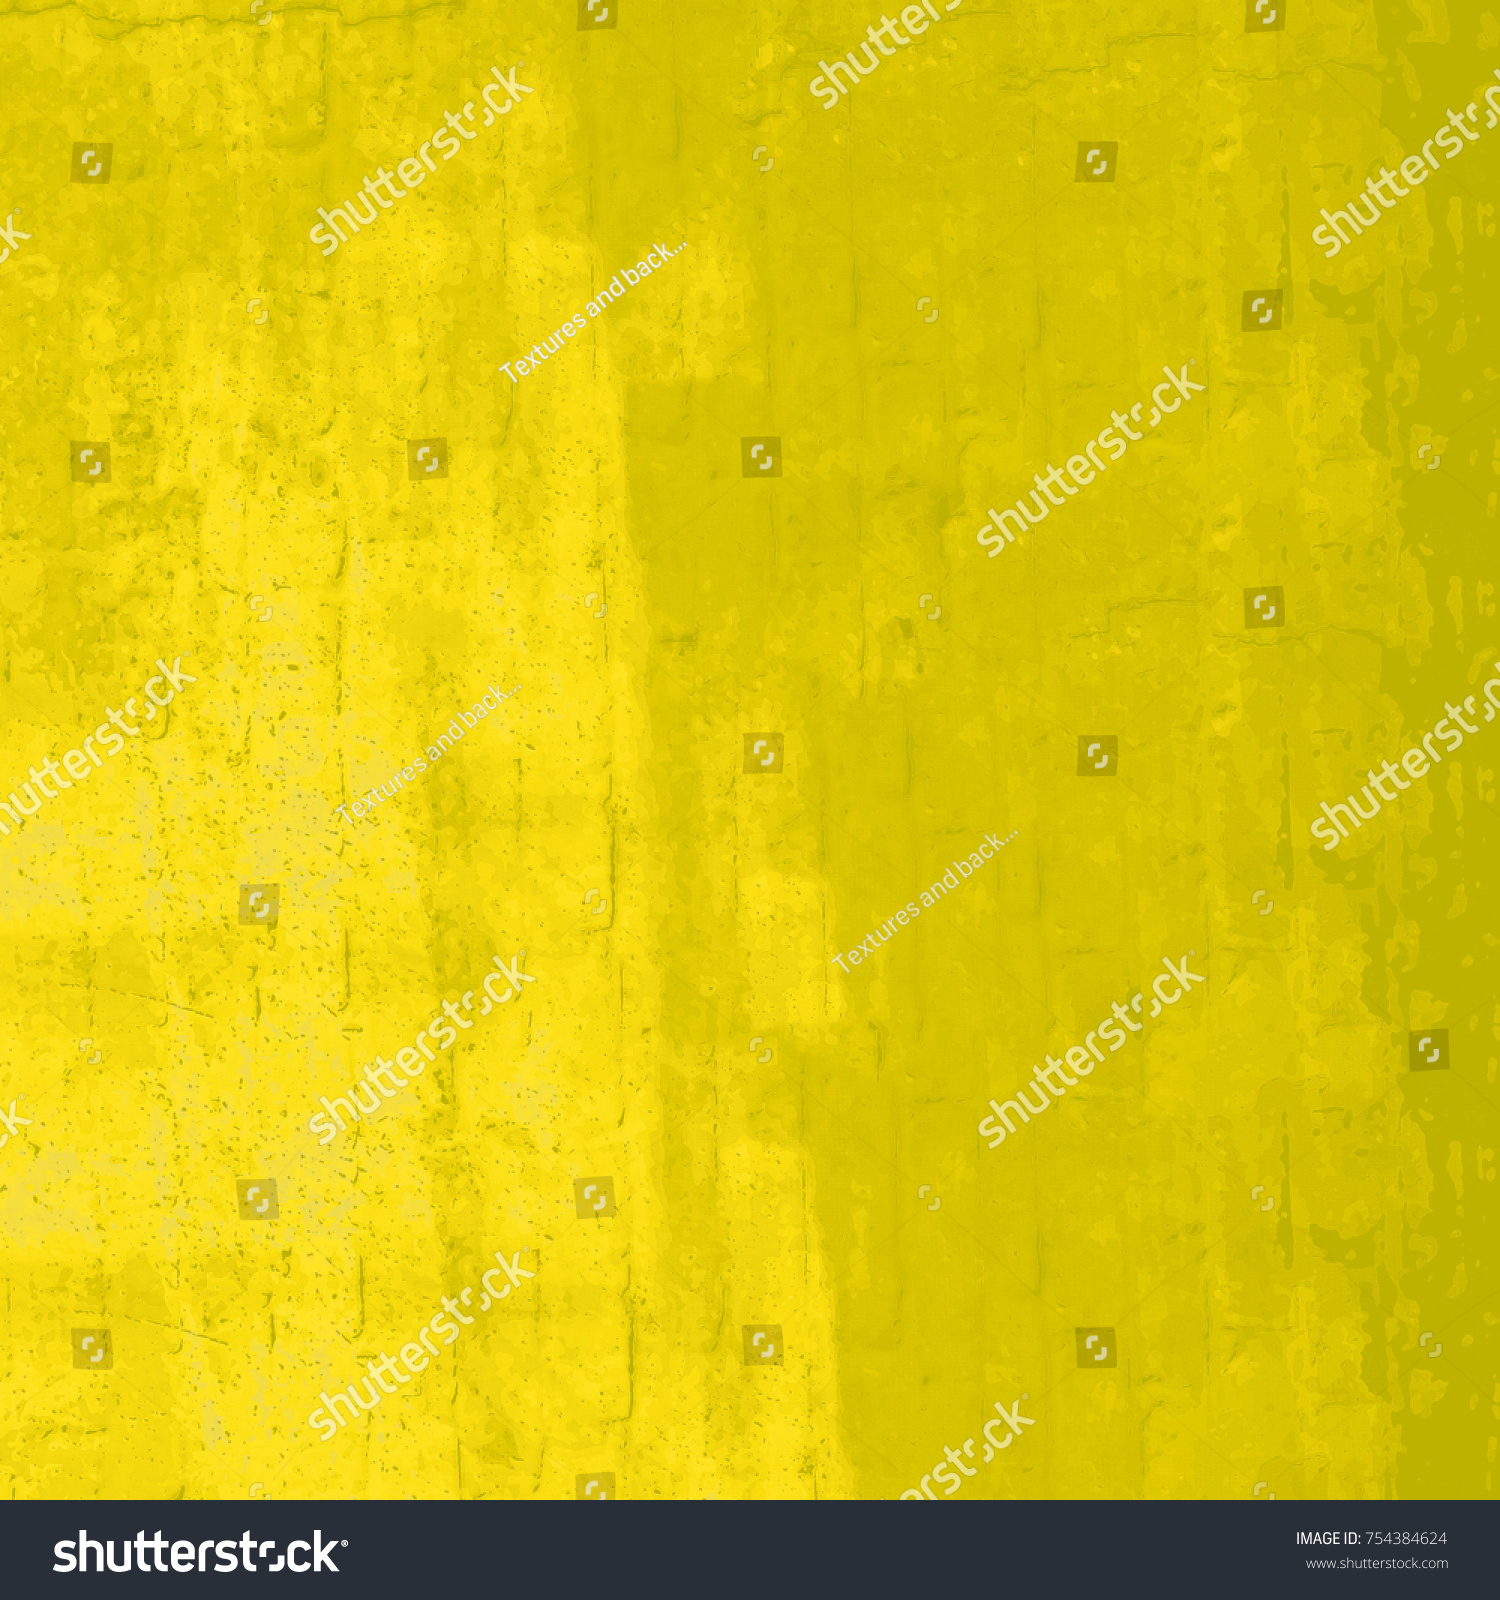 Yellow grunge background. The texture of the yellow paint from ...